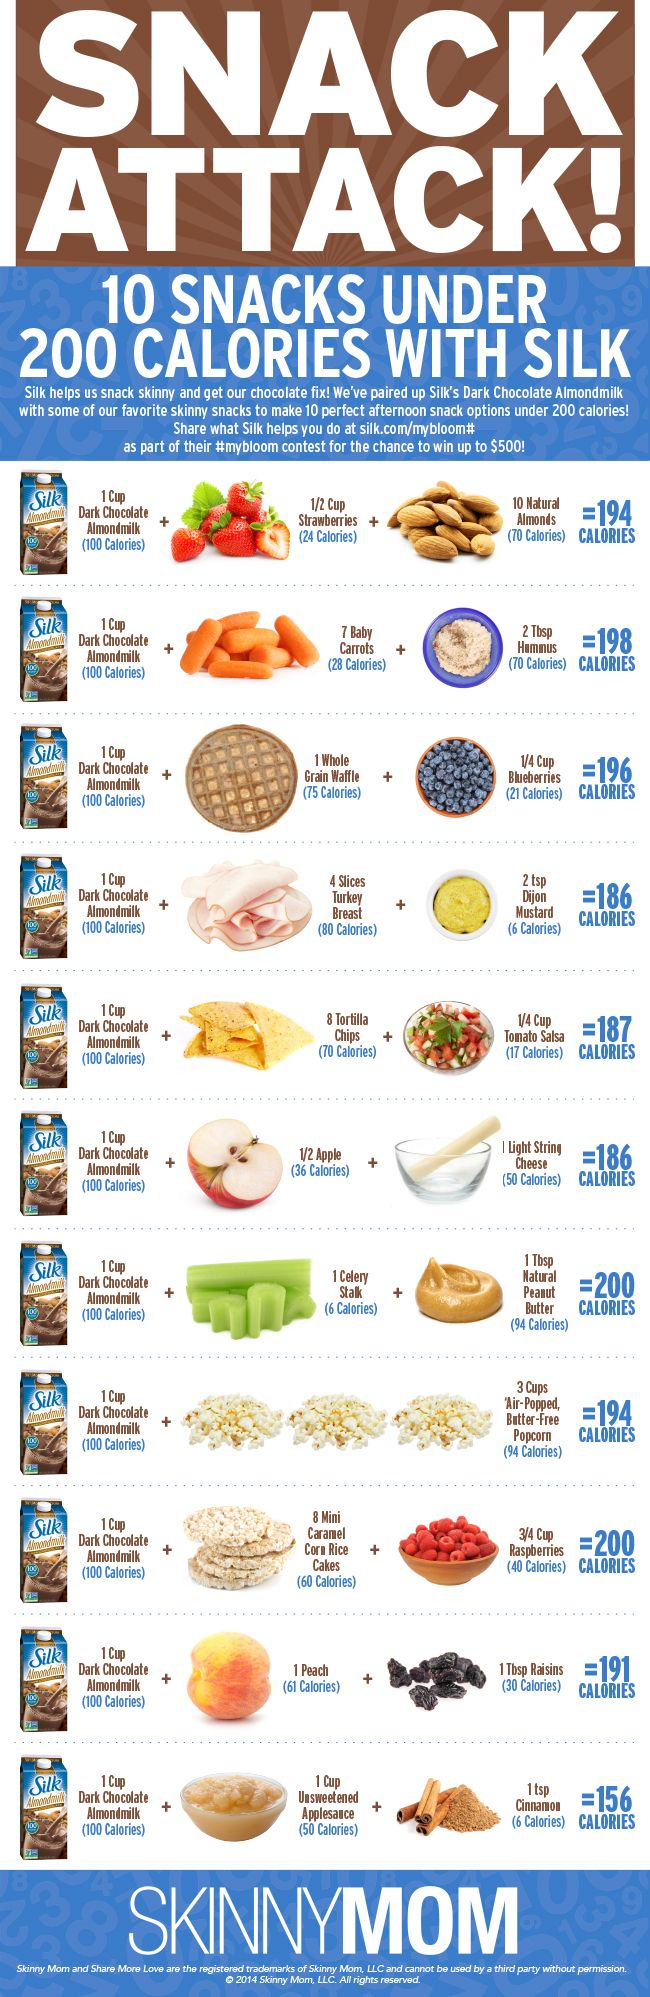 10 Snacks Under 200 Calories | Skinny Mom | Where Moms Get the Skinny on Healthy Living                                                                                                                                                      More